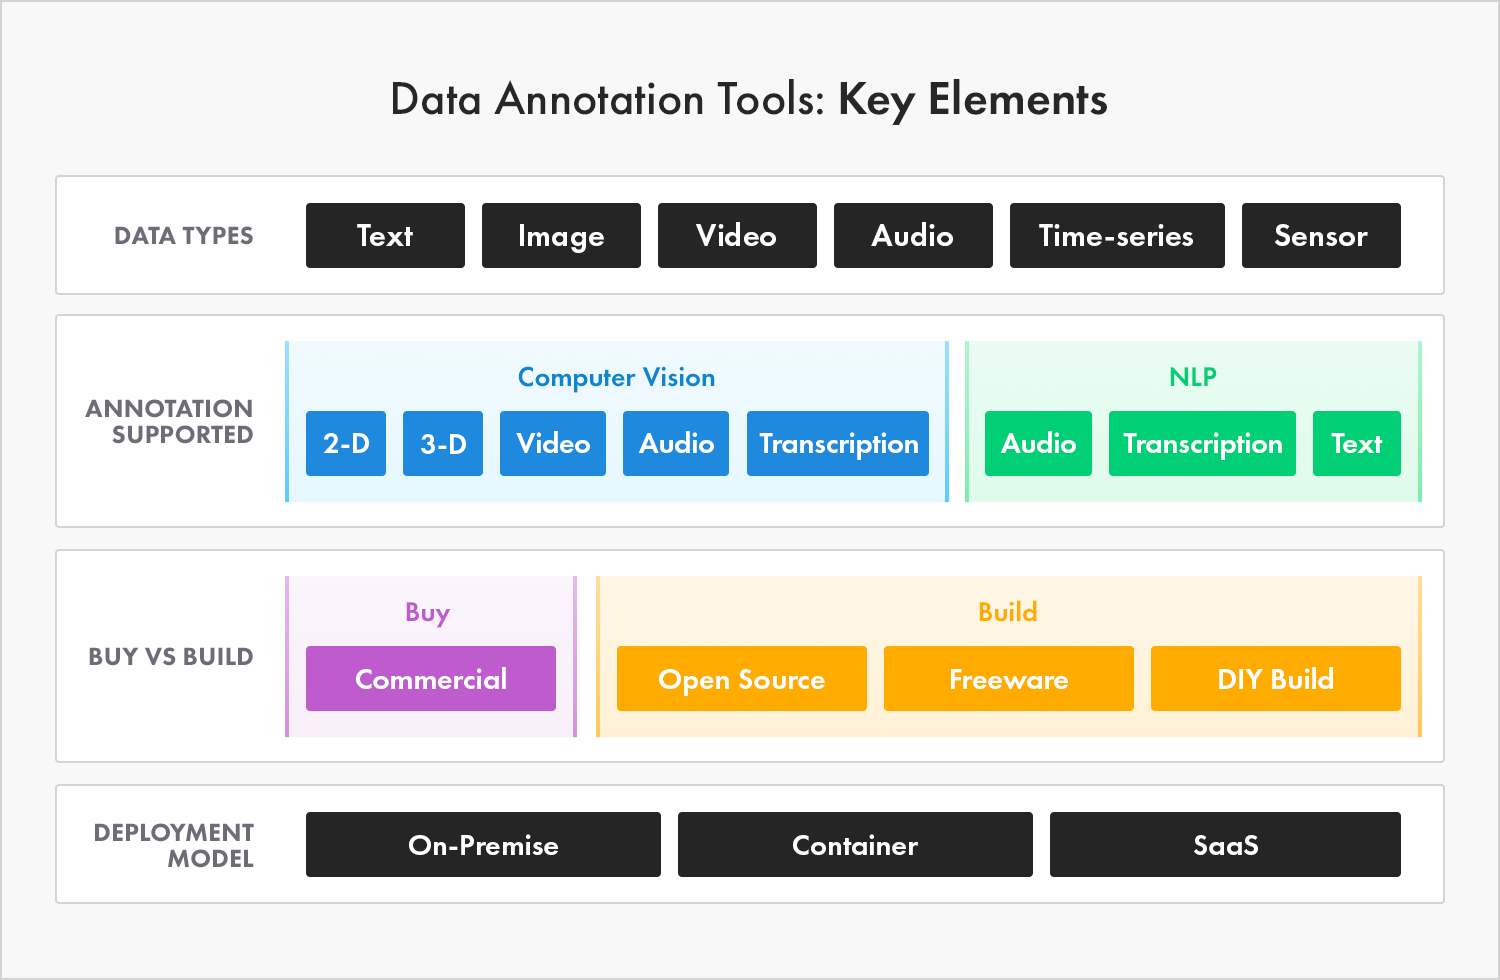 Data annotation tools have these key elements: They can be used to annotate many data types, including text, image, video, audio, time-series, and sensor data. They support annotation for 2-D, 3-D, video, audio, transcription, and text. You can buy a commercially-available data annotation tool, you can take a do-it-yourself approach and build your own, or you can use open source or freeware to create and tailor a data annotation tool for your use case. Deployment models for data annotation tools are on-premise (local), container, SaaS, and Kubernetes - or some combination.